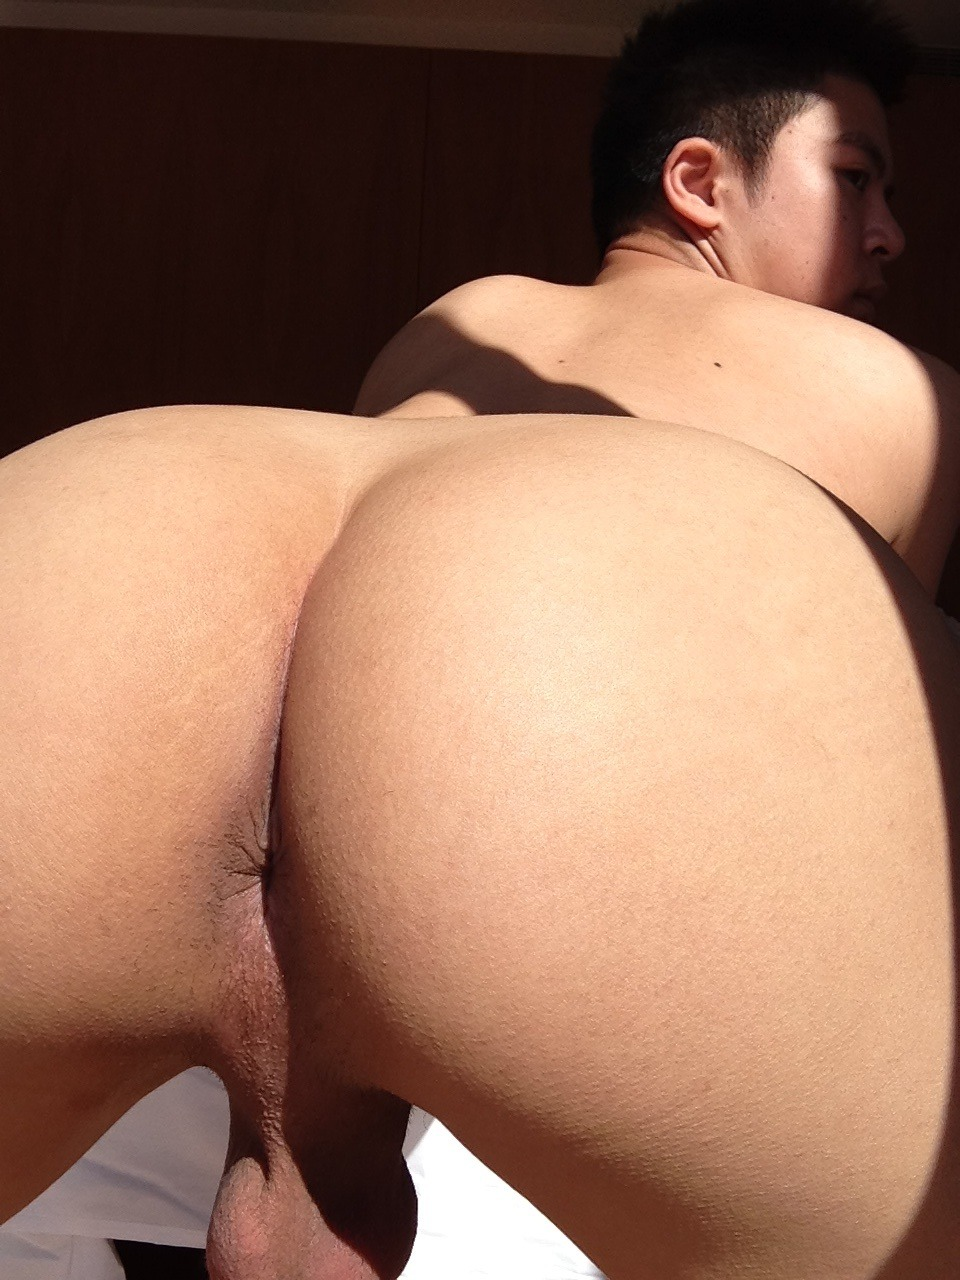 Have video hot asian boy butt ass